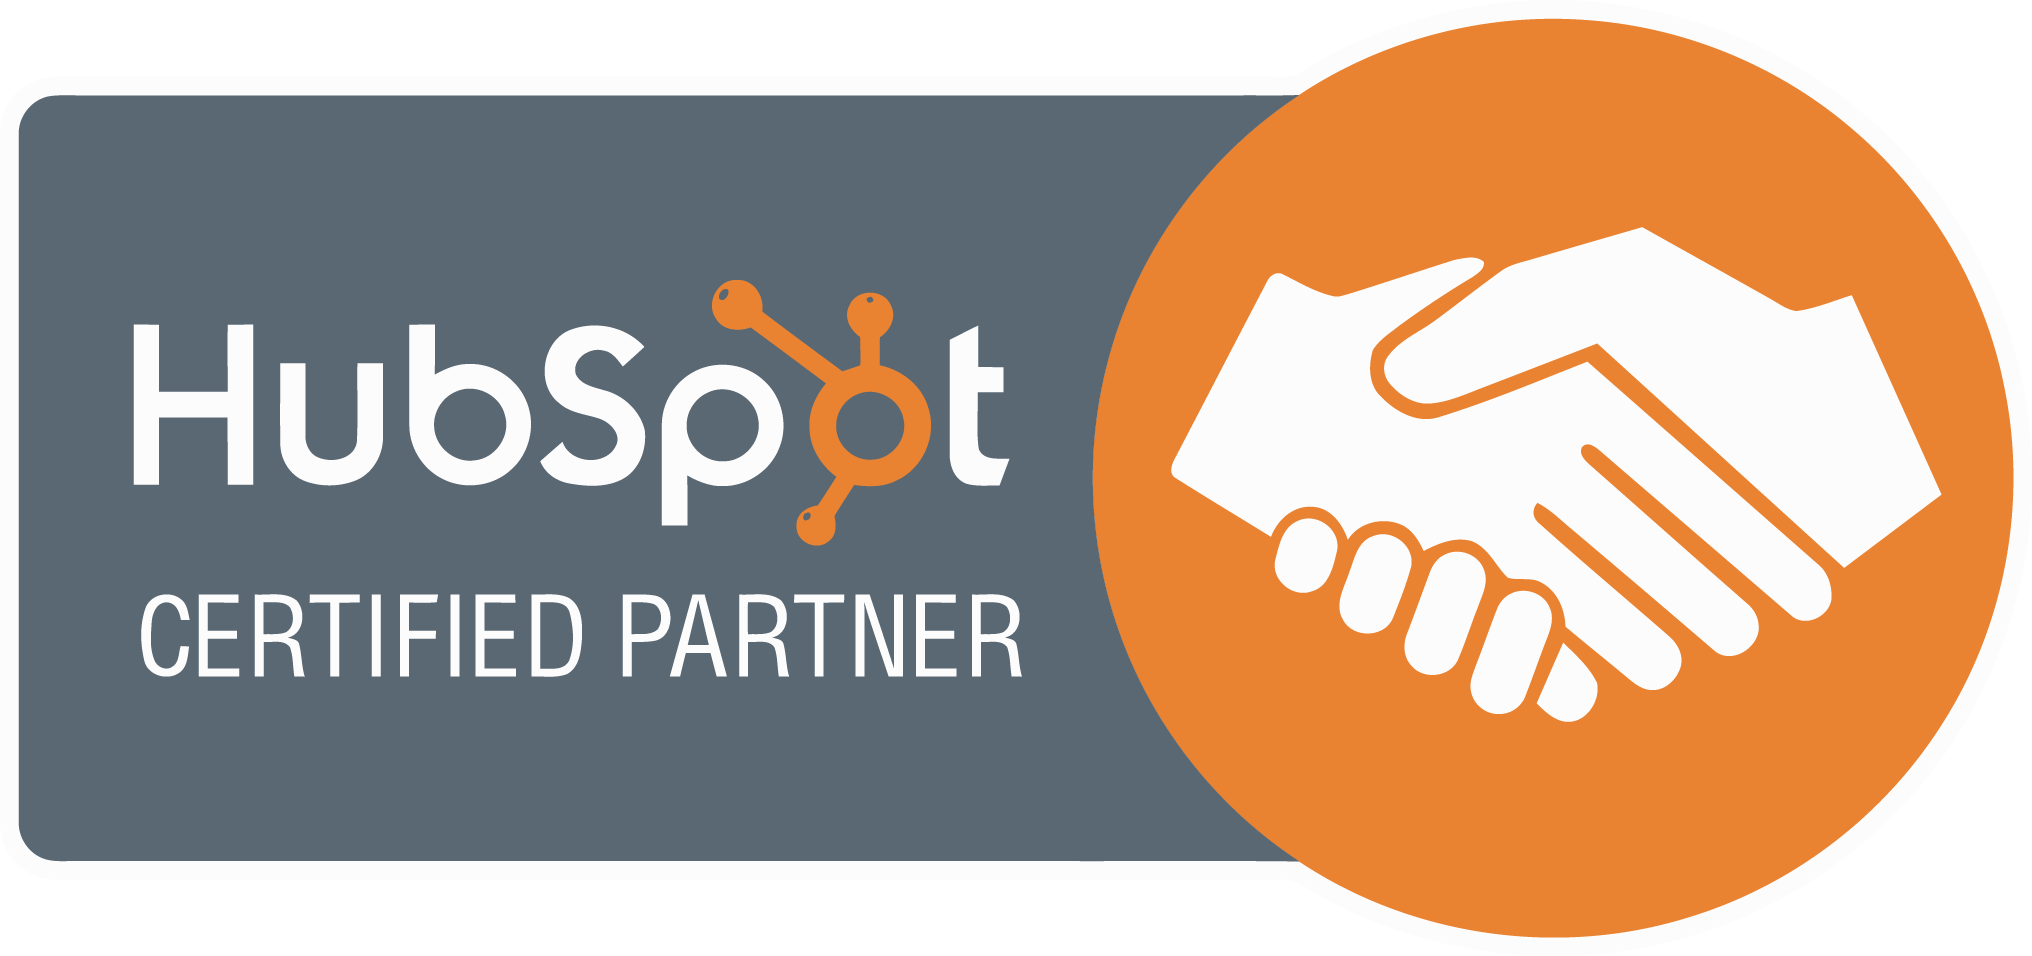 HubSpot Partner for Implementation Support in Singapore and Asia